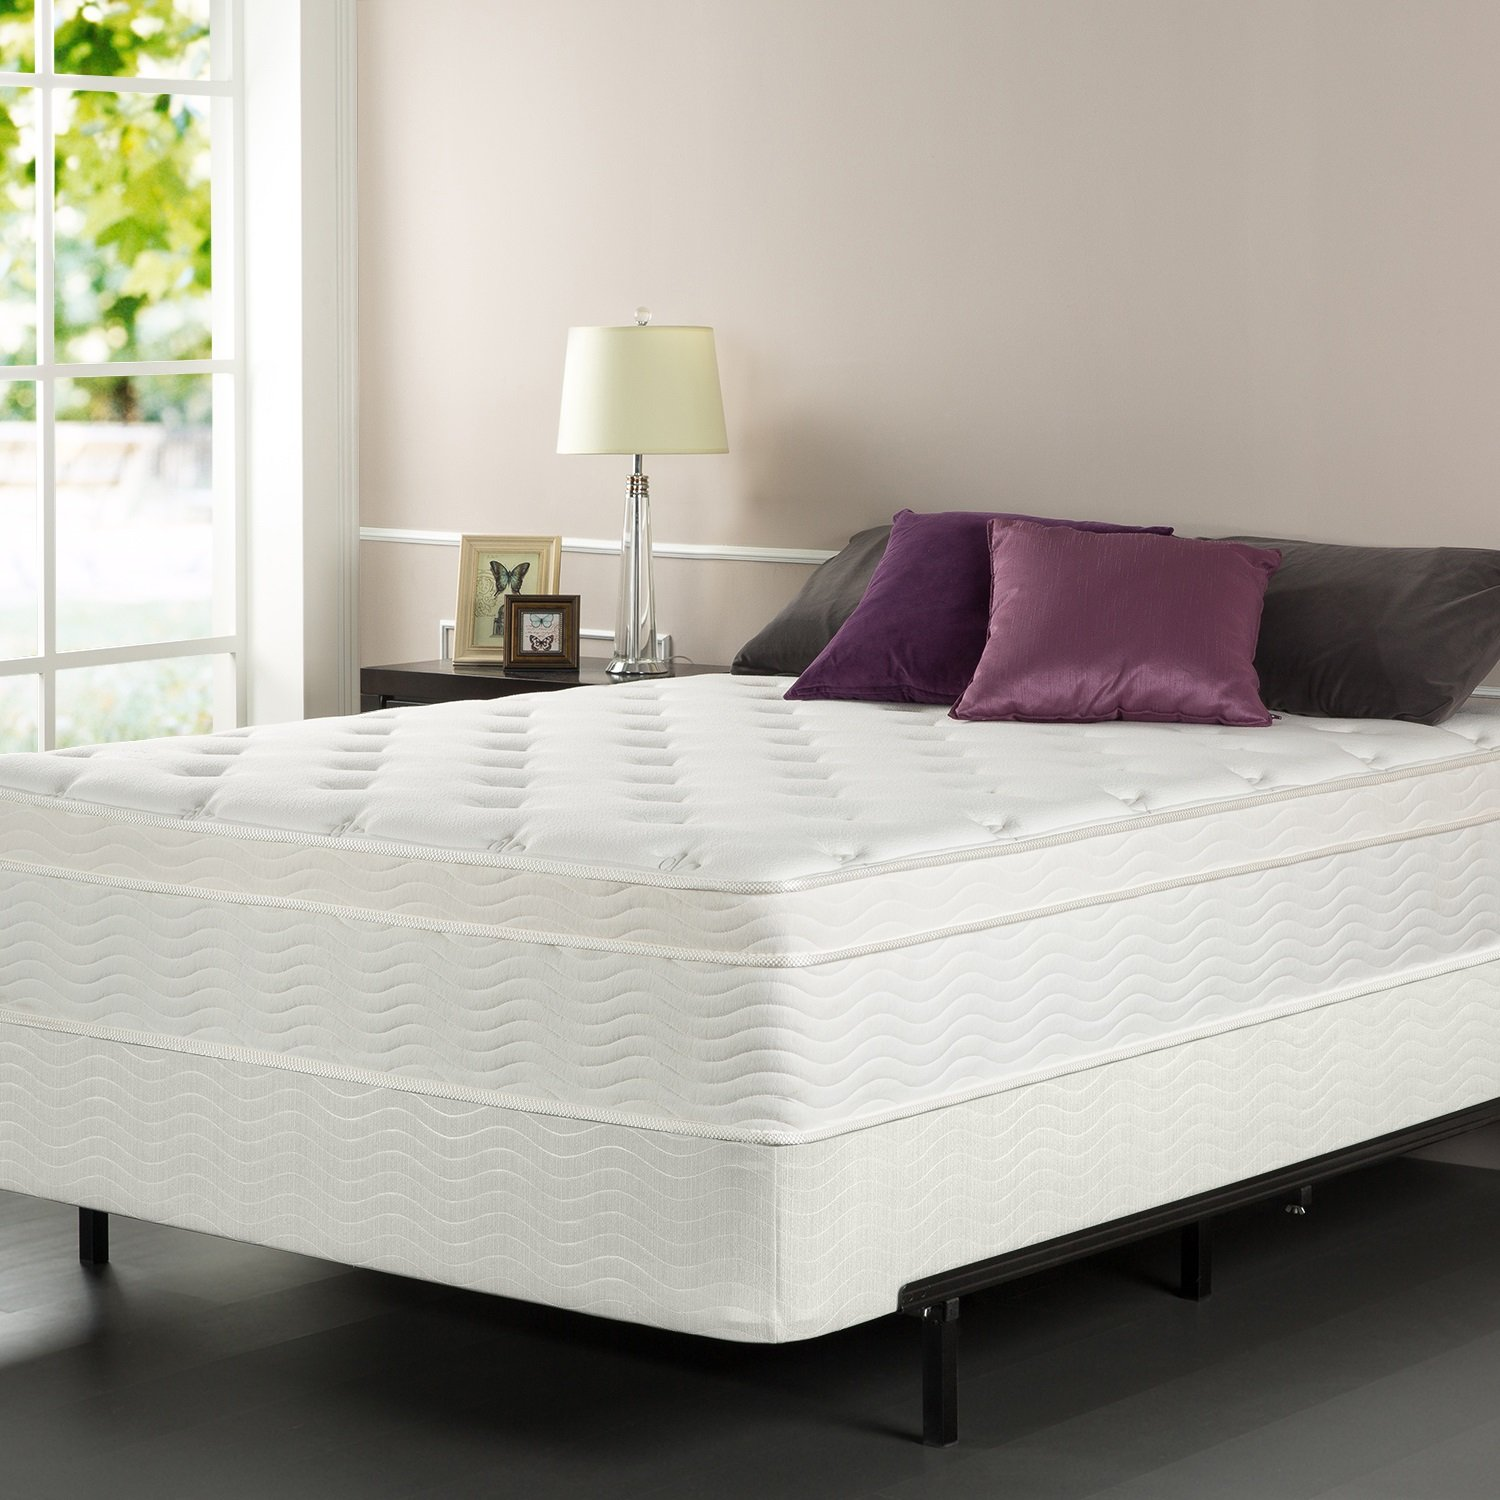 Best king size mattress reviews 2018 with relyproductcom for Best king size mattress reviews